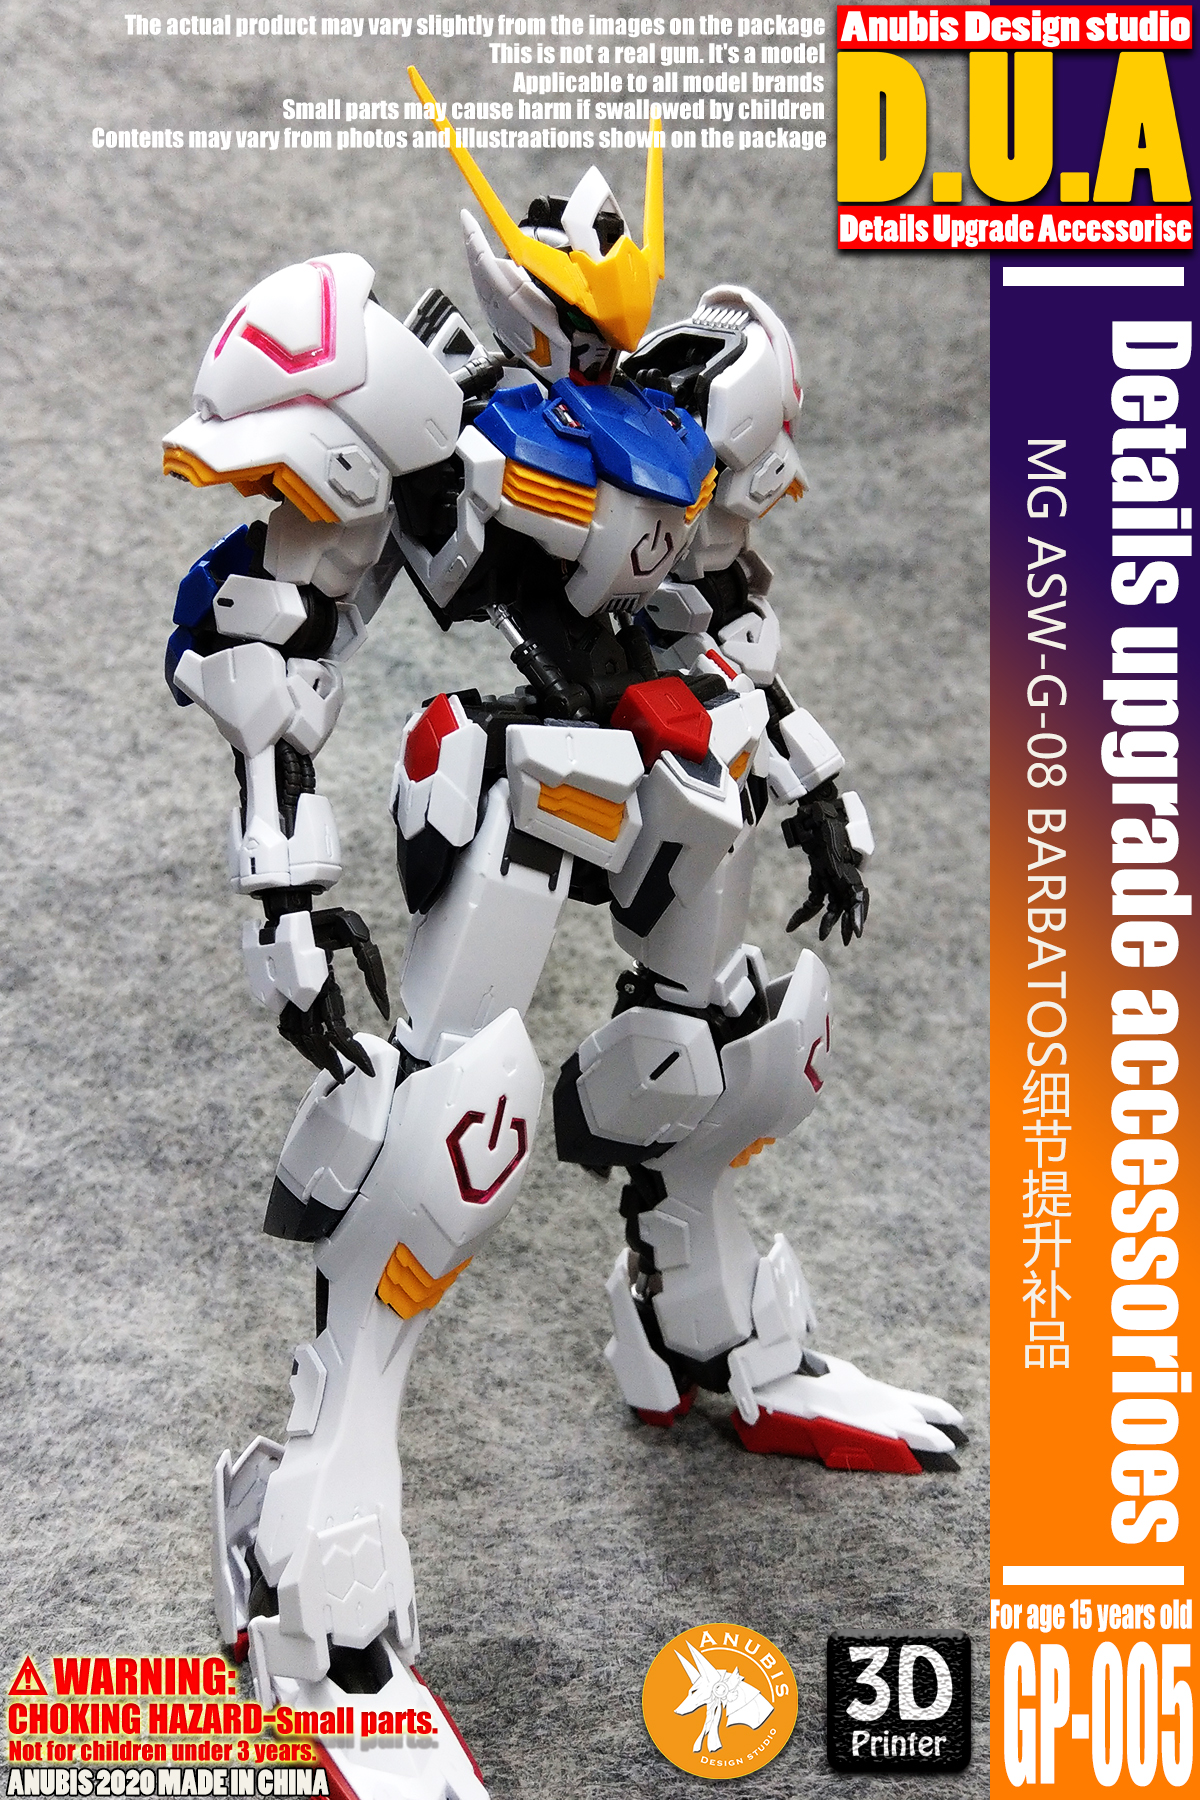 G535_GP005_MG_barbatos_006.jpg